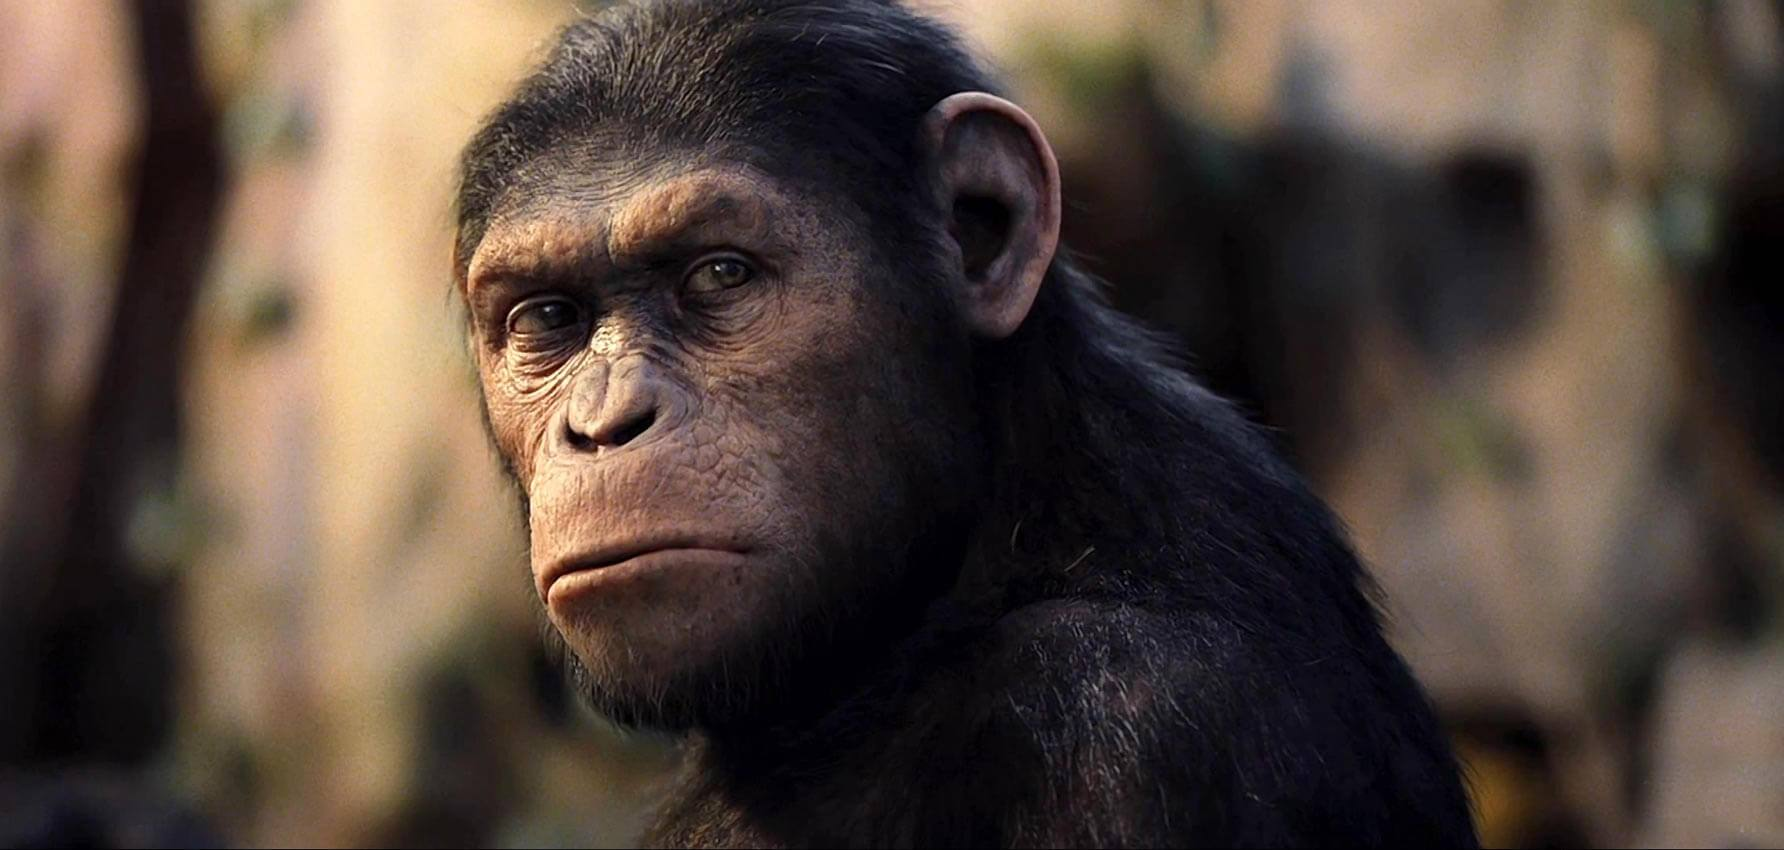 A motion capture animated Andy Serkis as Caesar in Rise of the Planet of the Apes (2011)